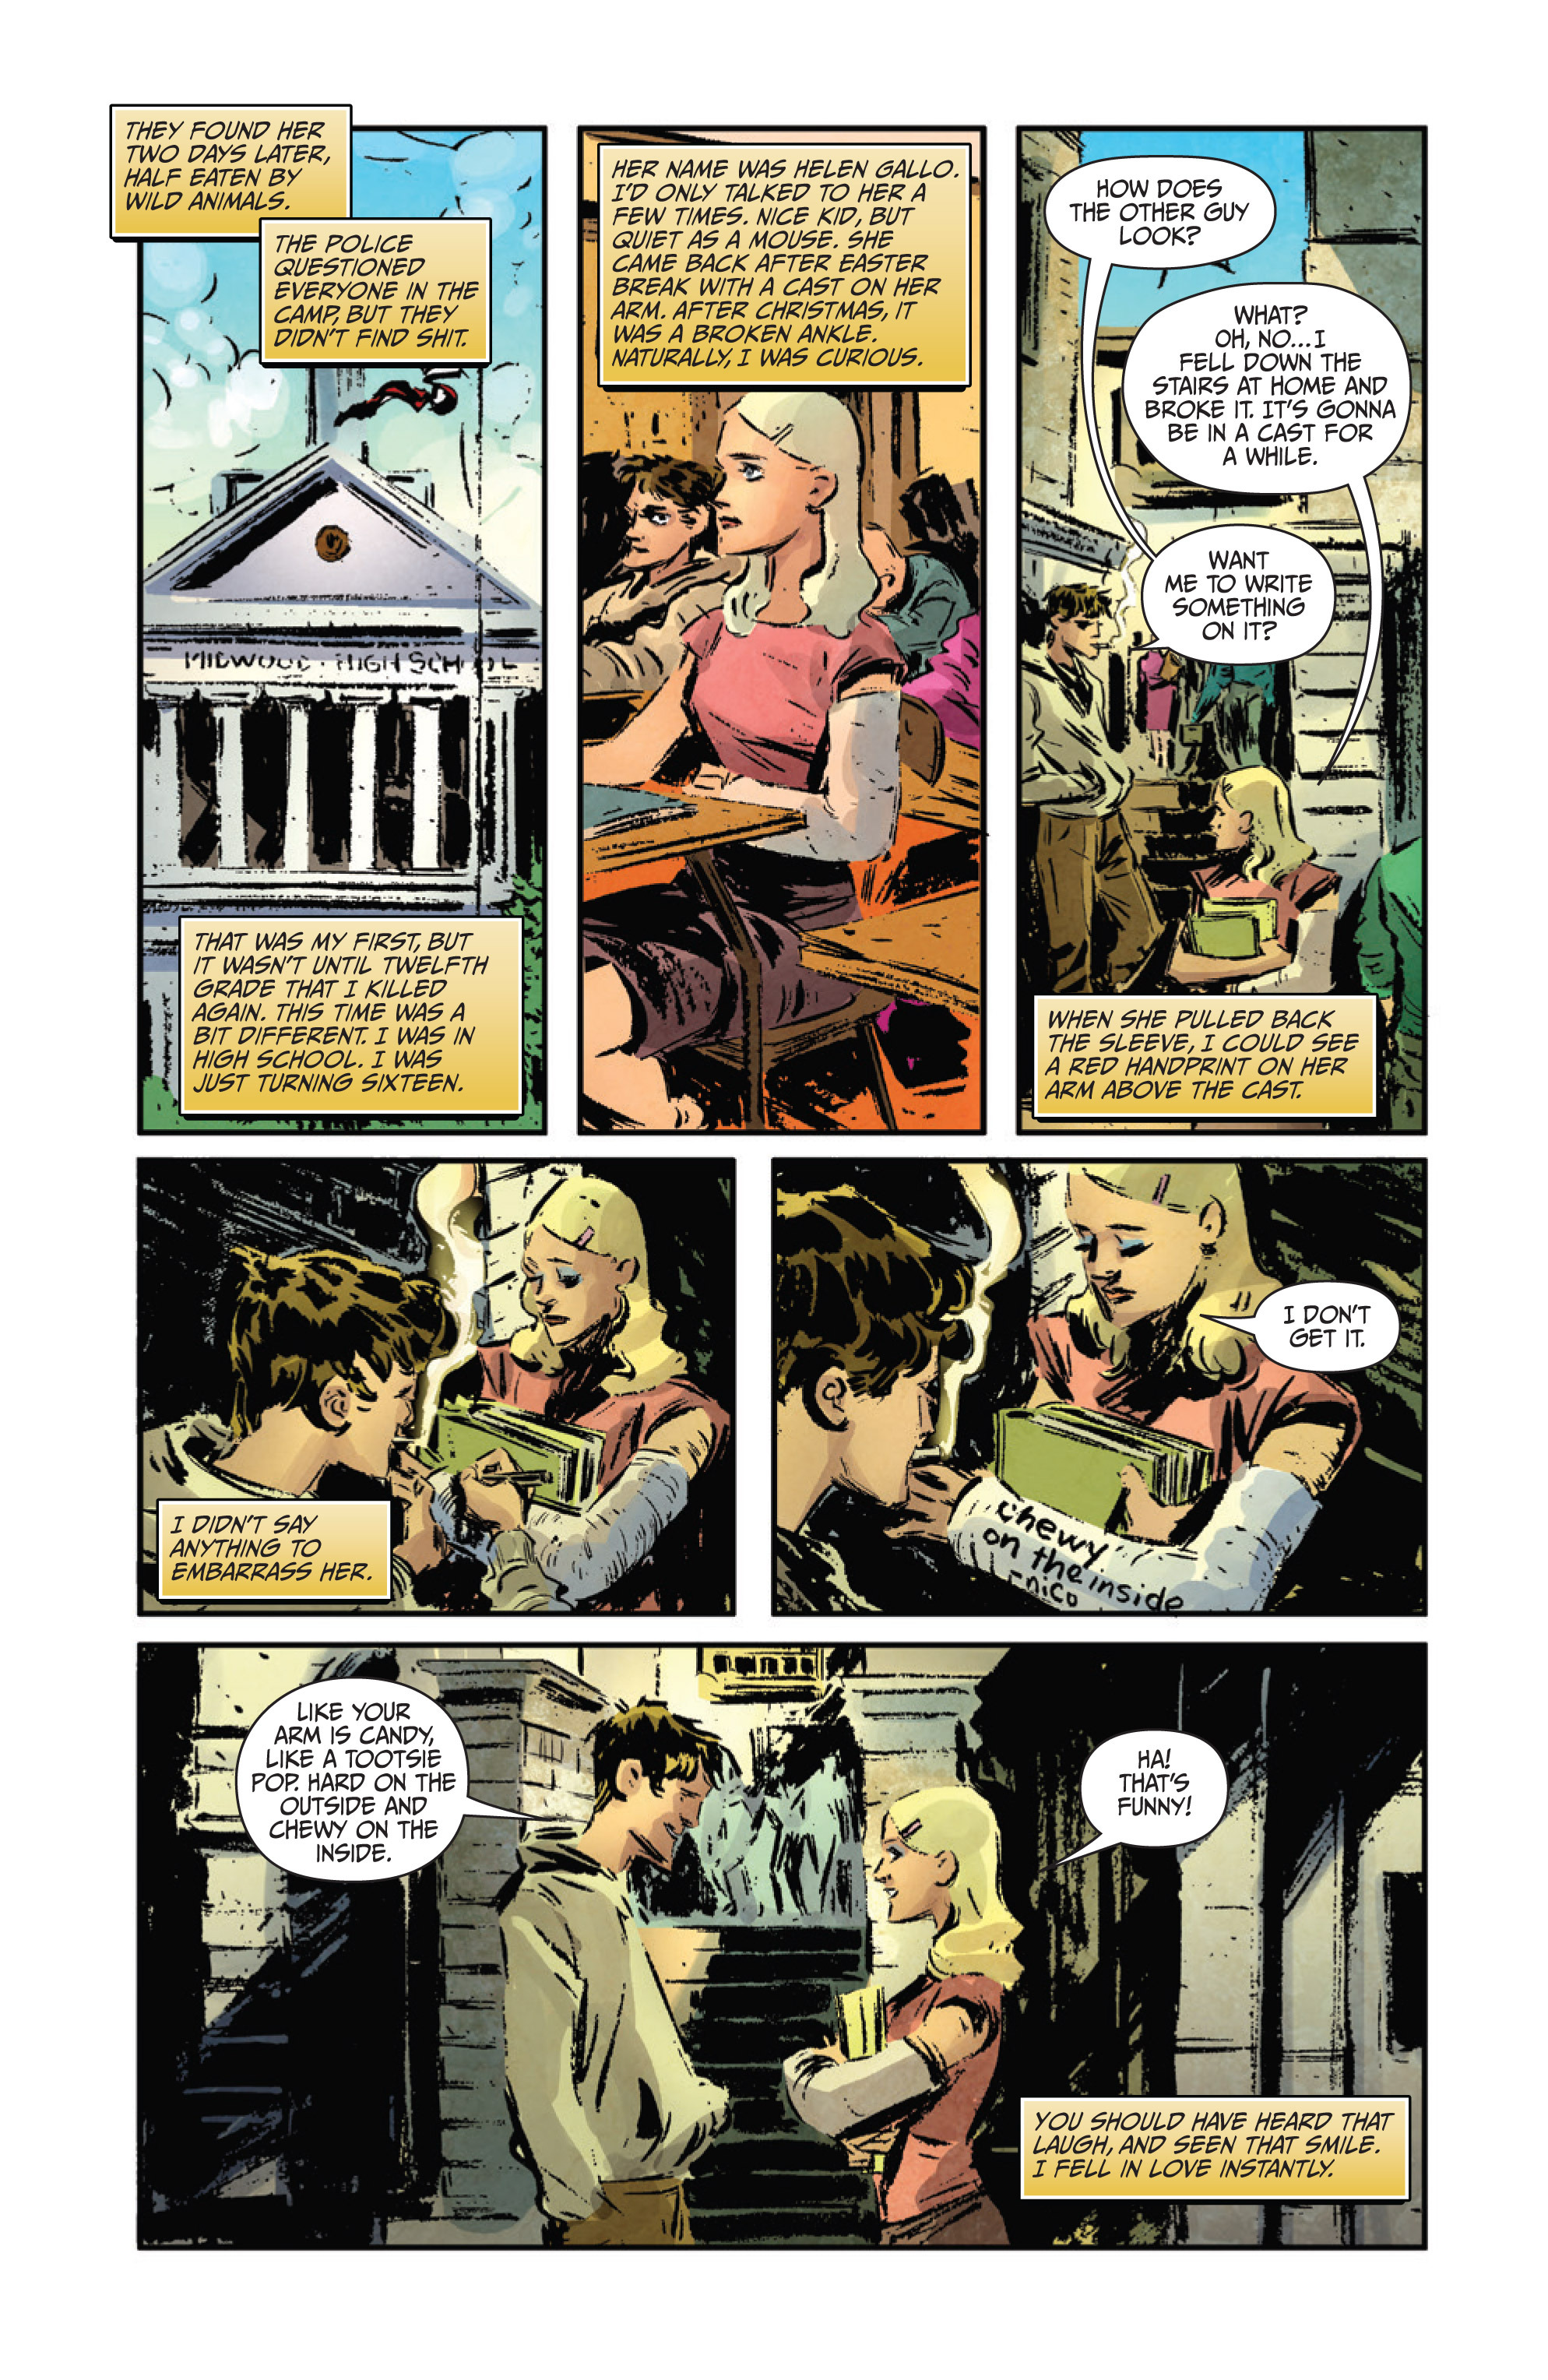 Read online Sex and Violence Vol. 2 comic -  Issue # Full - 52